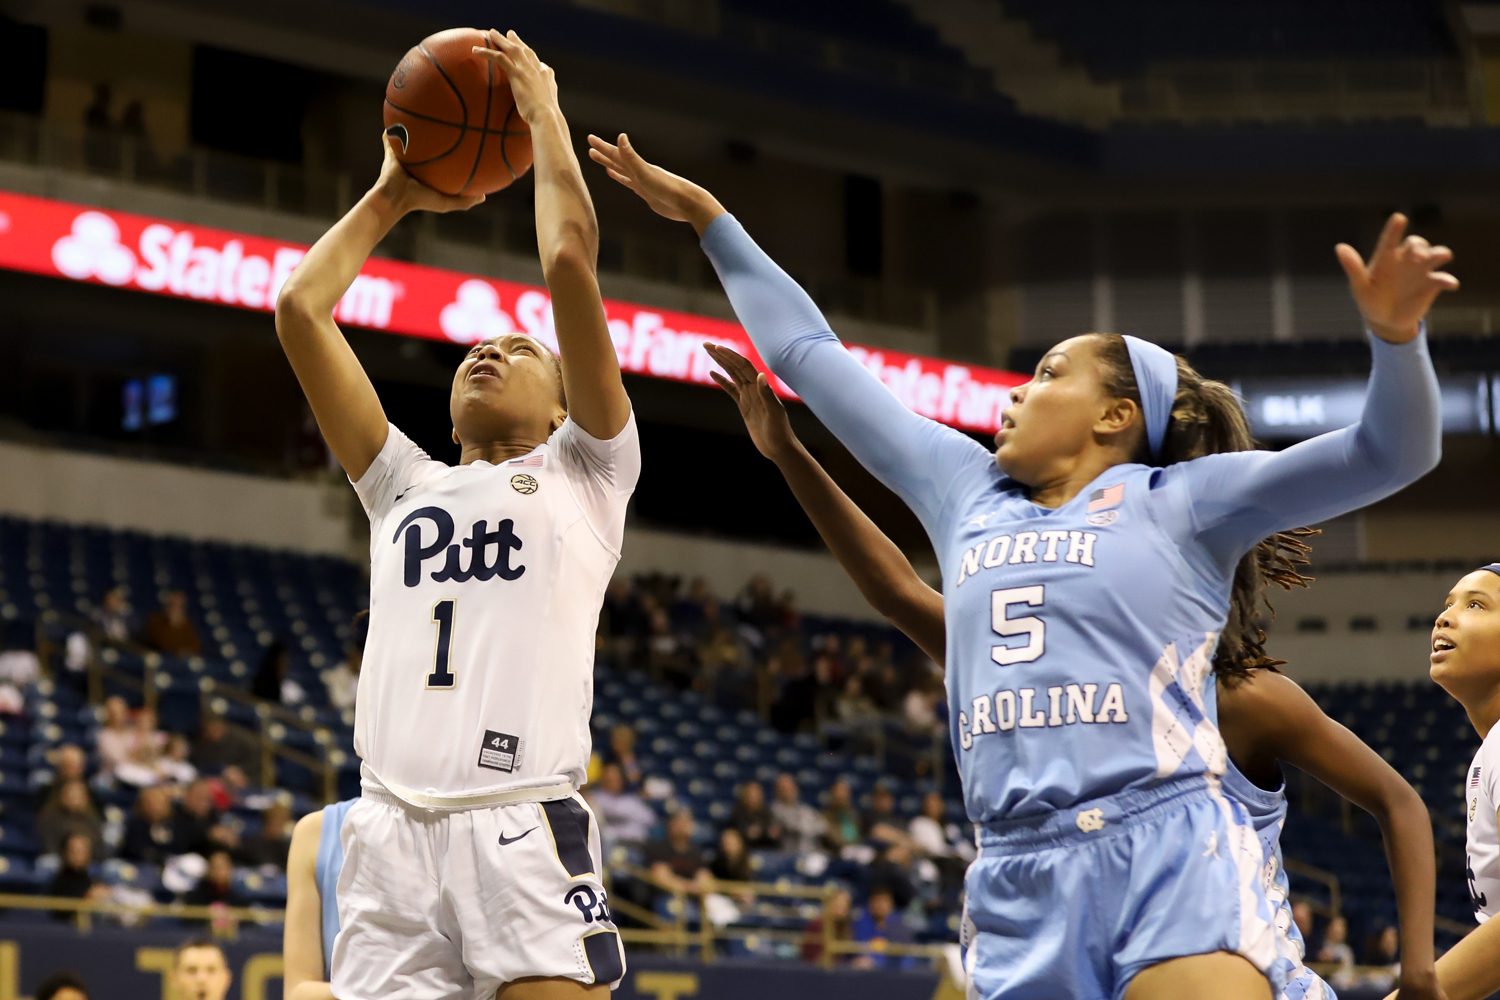 Senior forward Danielle Garven (1) attempts a layup during Pitt's 91-78 victory over North Carolina on Thursday evening.